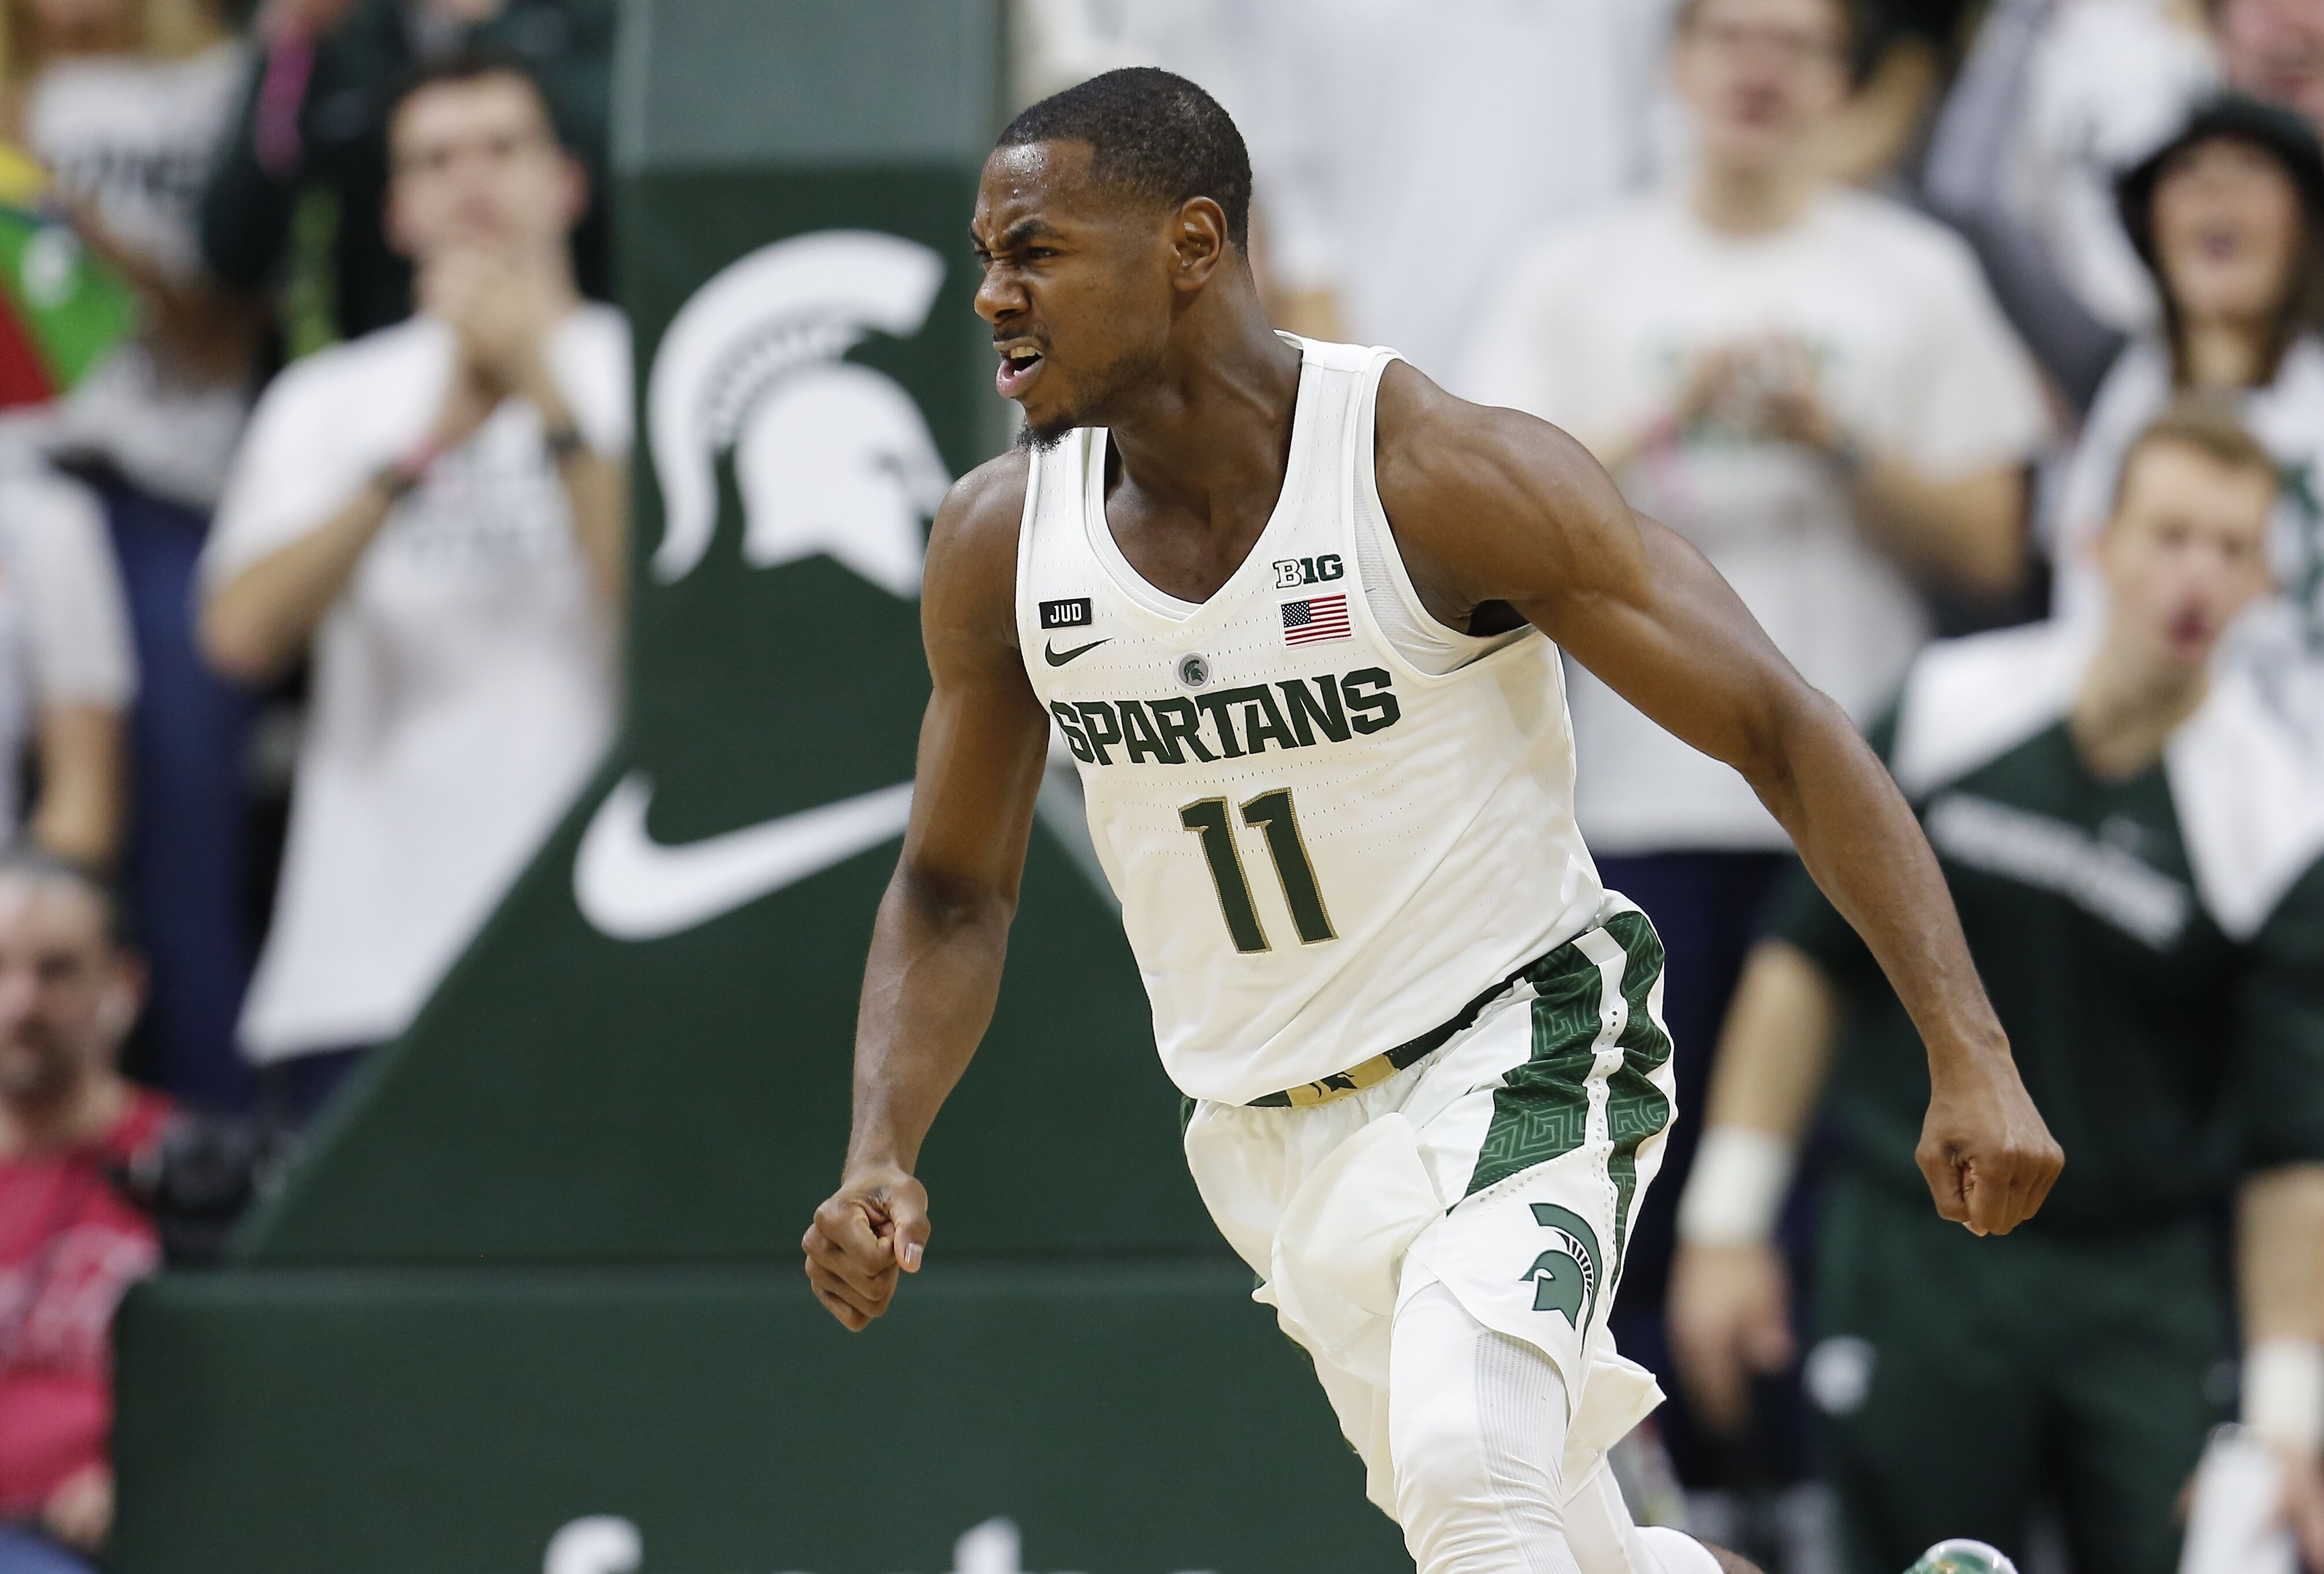 Get the latest Michigan State Spartans news scores stats standings rumors and more from ESPN